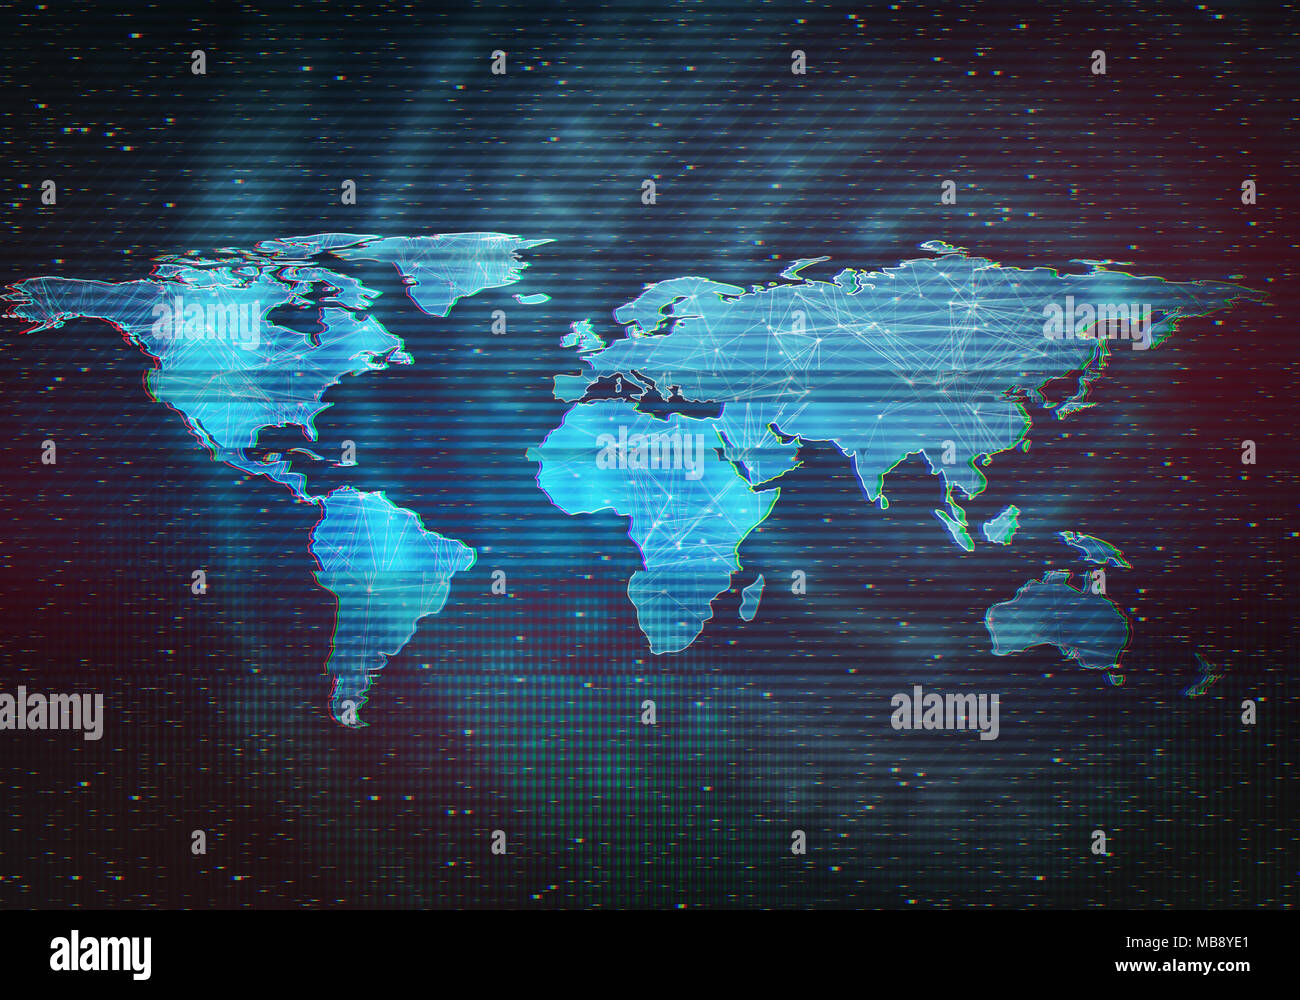 Abstract digital illustration of world map distorted interface abstract digital illustration of world map distorted interface screen signal error fail glitch effect technology background conceptual image gumiabroncs Choice Image